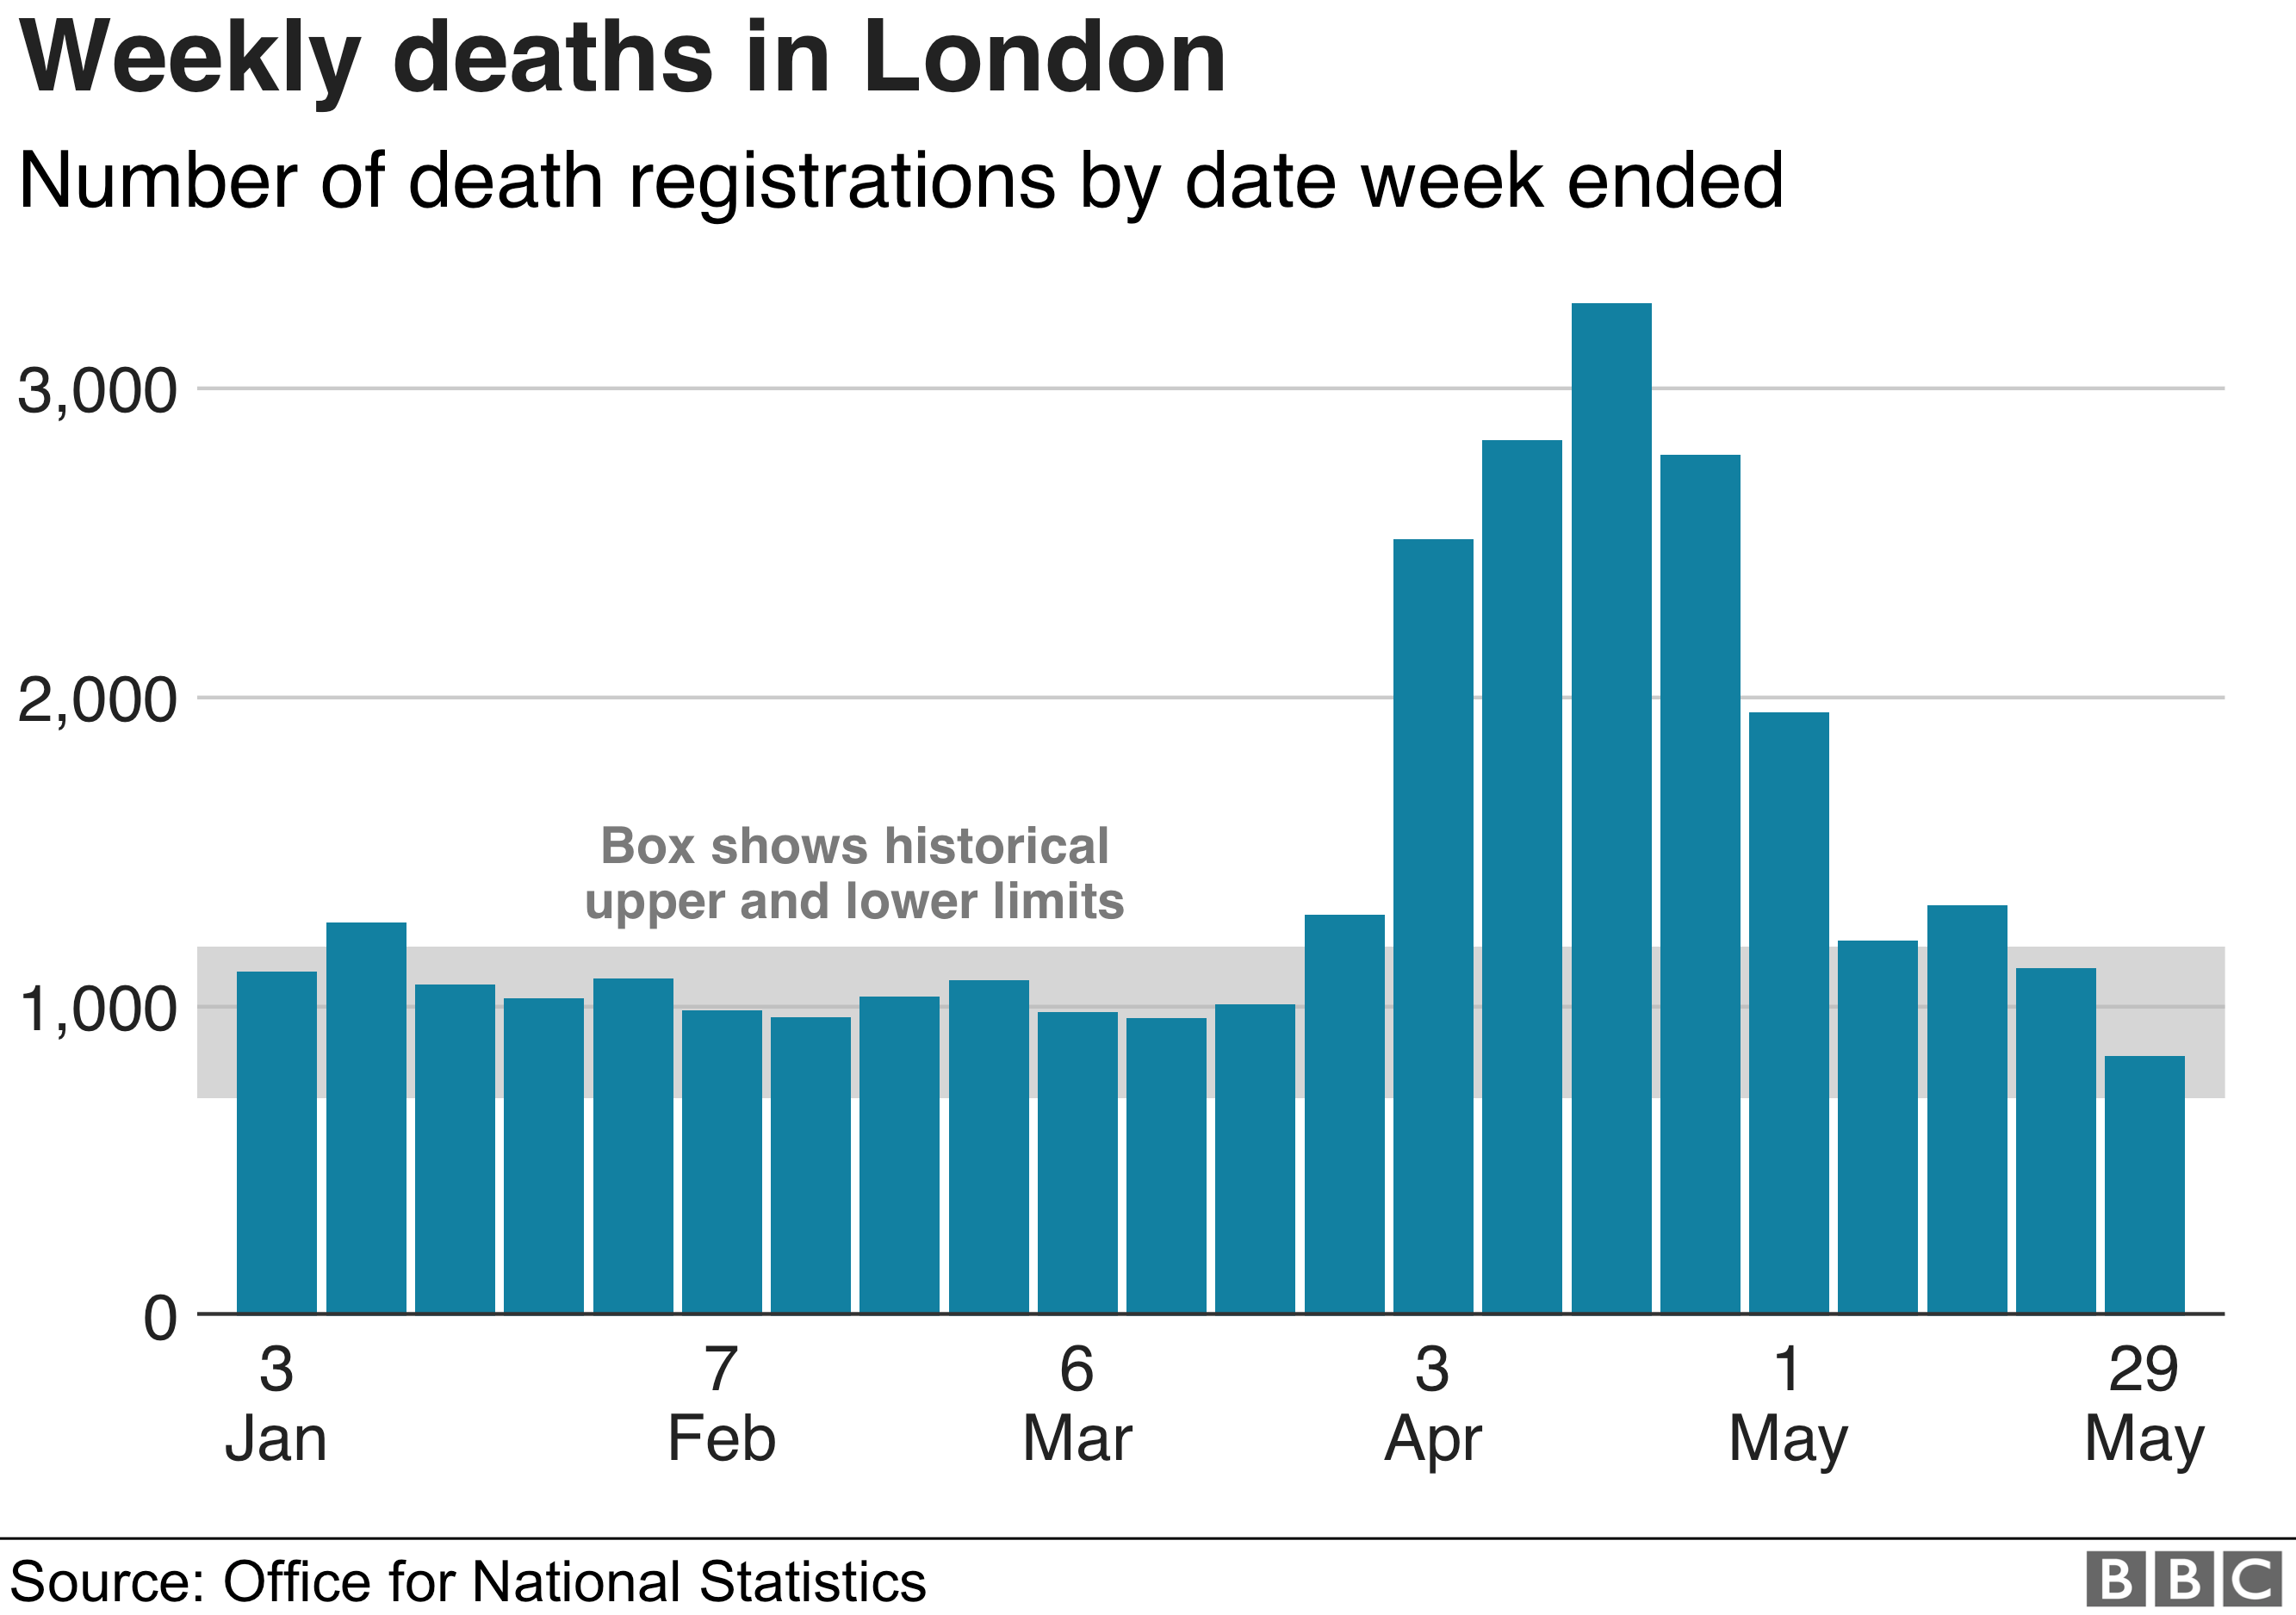 Weekly deaths in London up to 29 May 2020